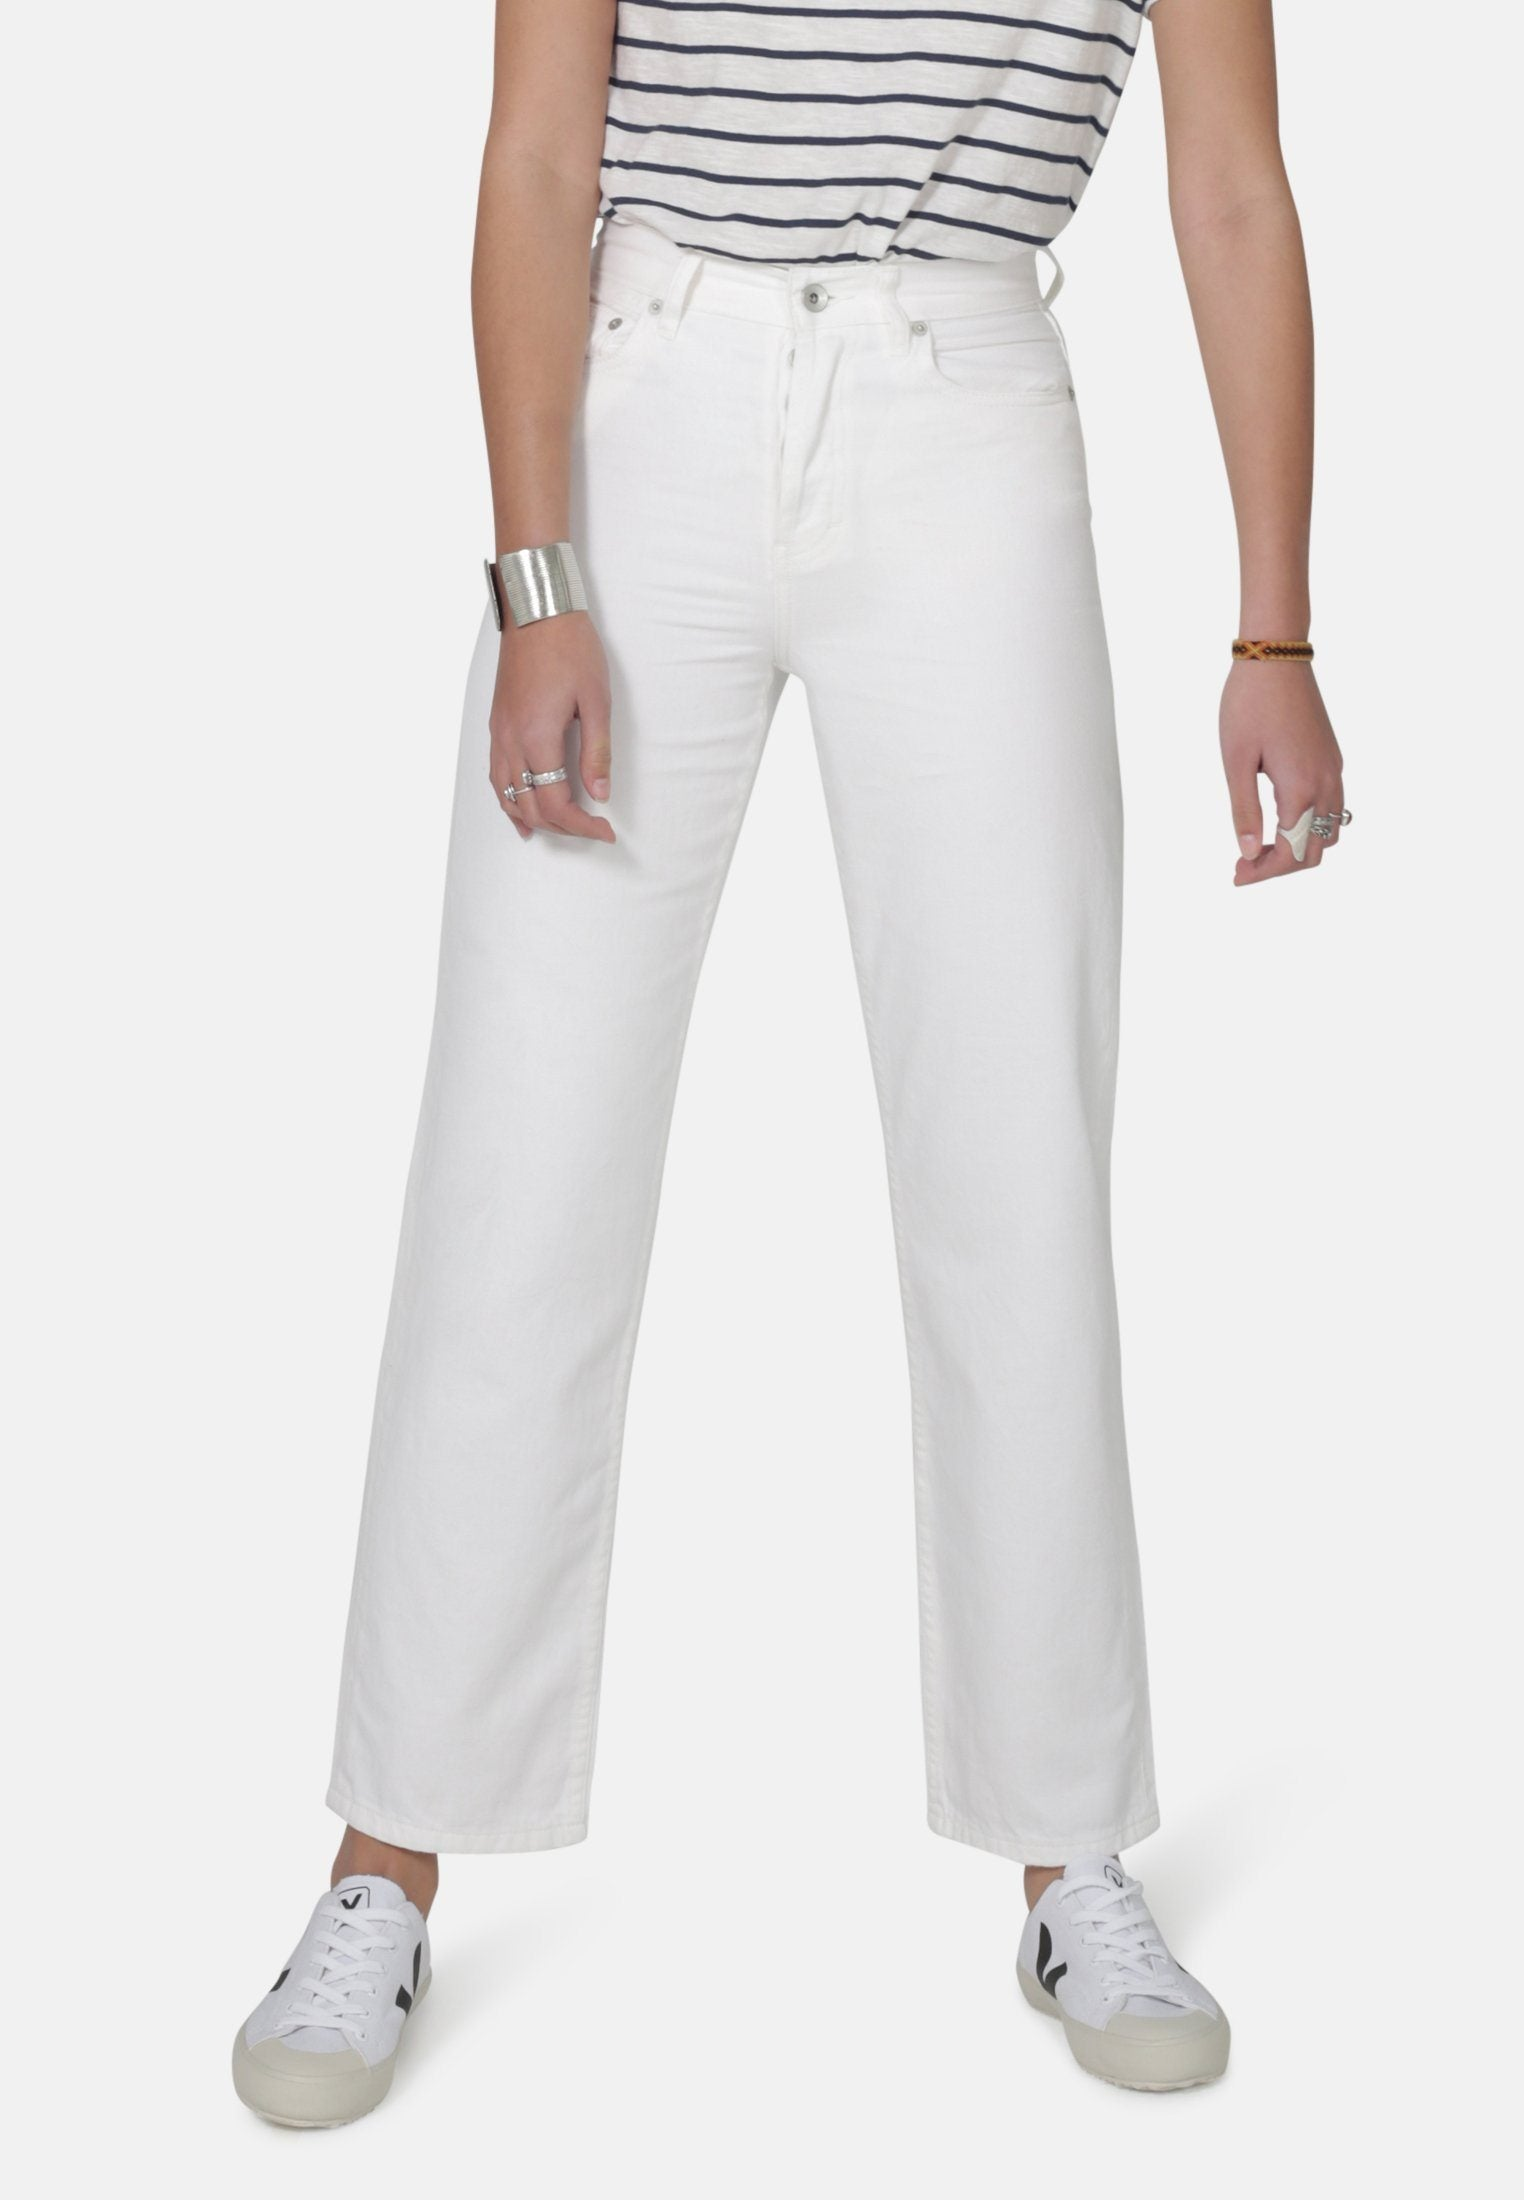 White Libby Organic Jeans | Organic Cotton | by MONKEE Genes